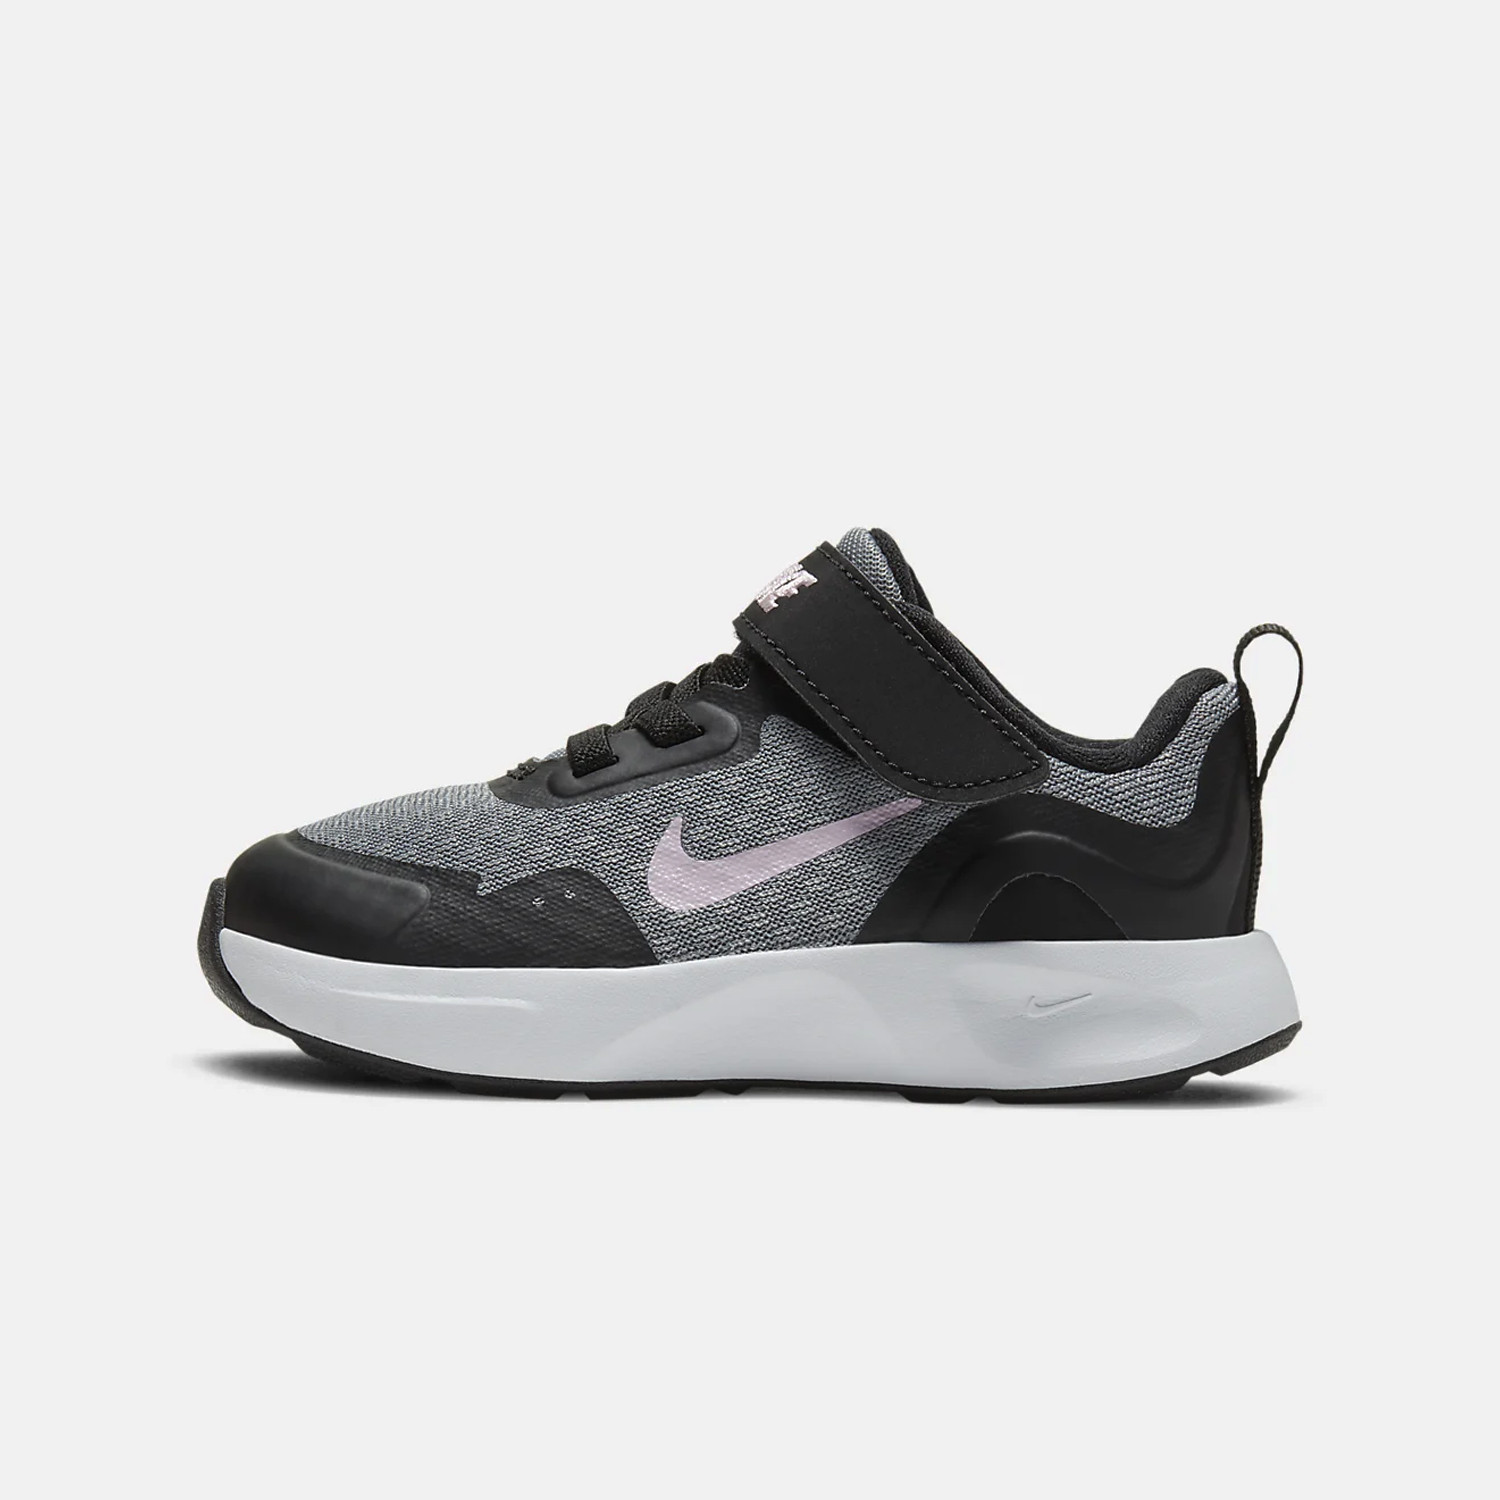 Nike Wearallday Βρεφικά Παπούτσια (9000054759_46154)